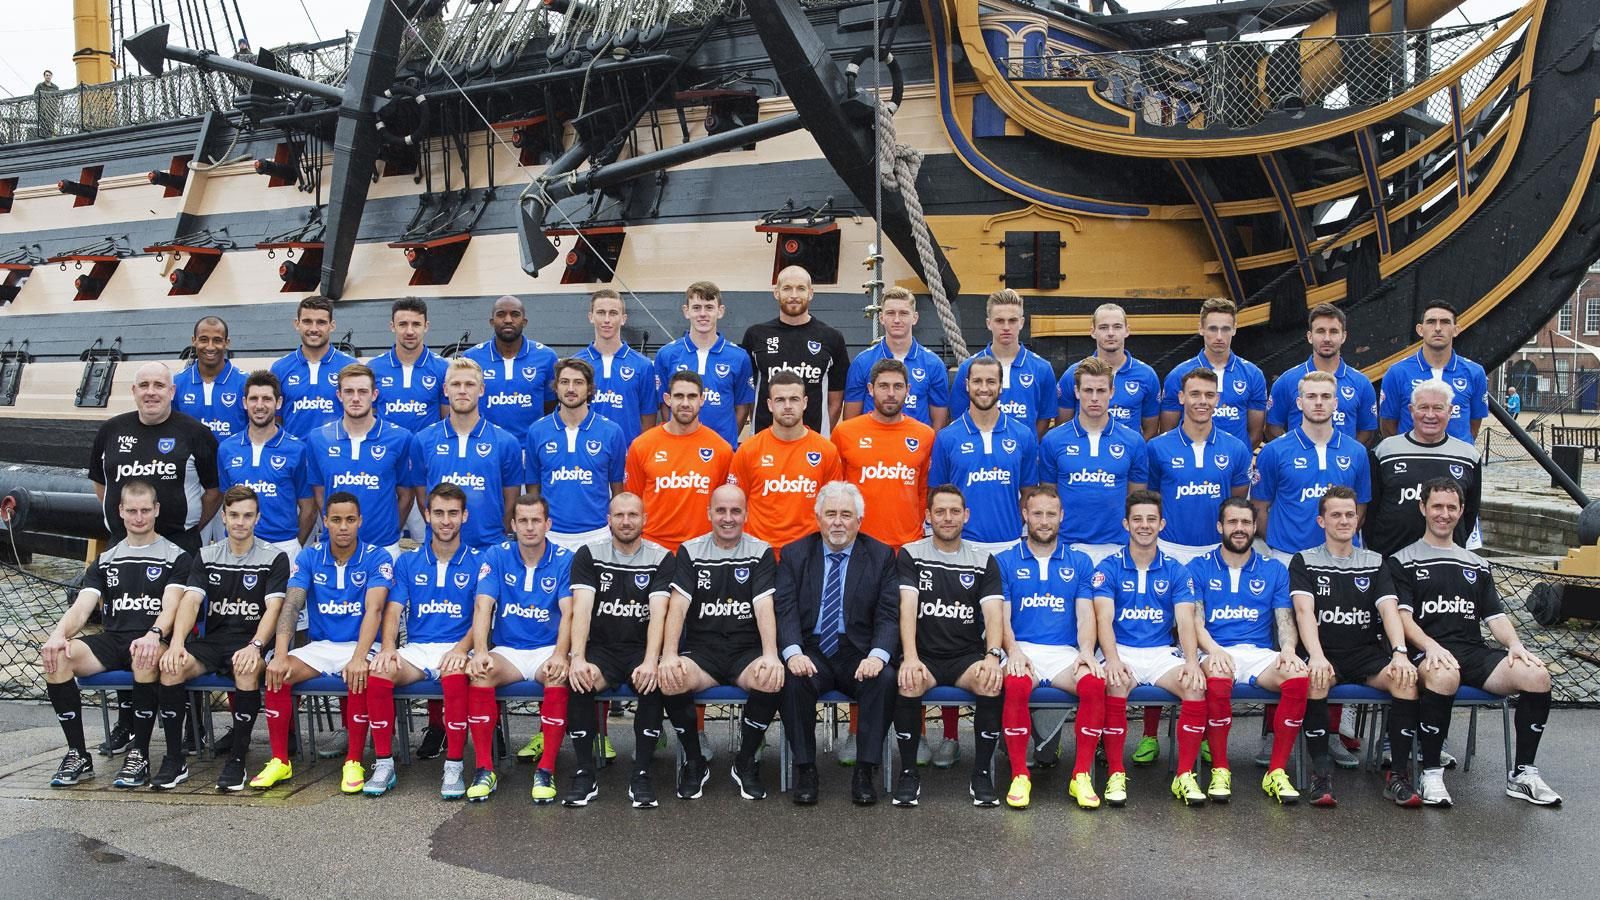 BE A PART OF POMPEY'S TEAM PHOTO - News - Portsmouth